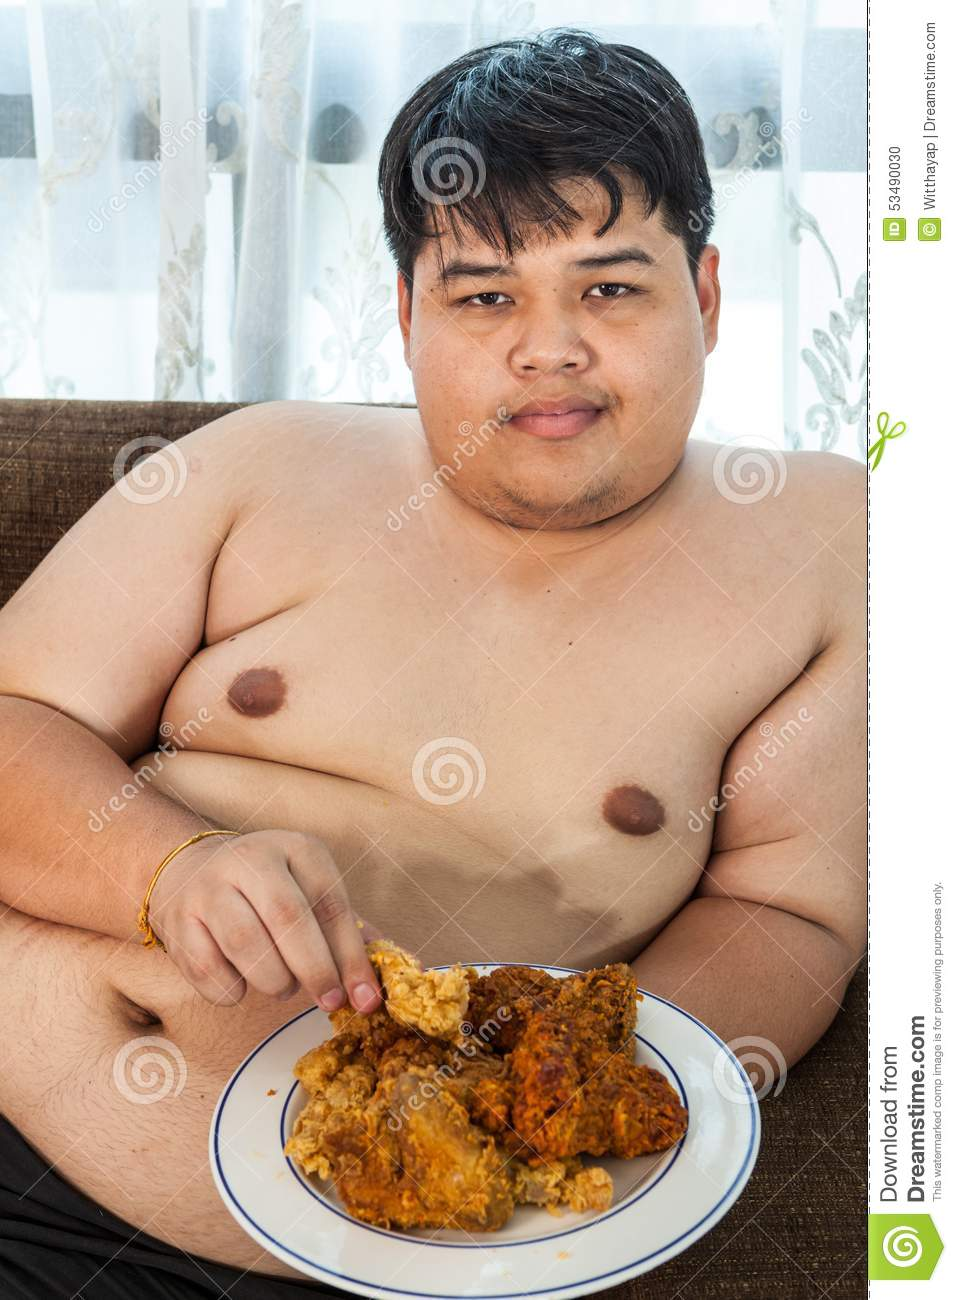 Asian men eating and swallowing cum from